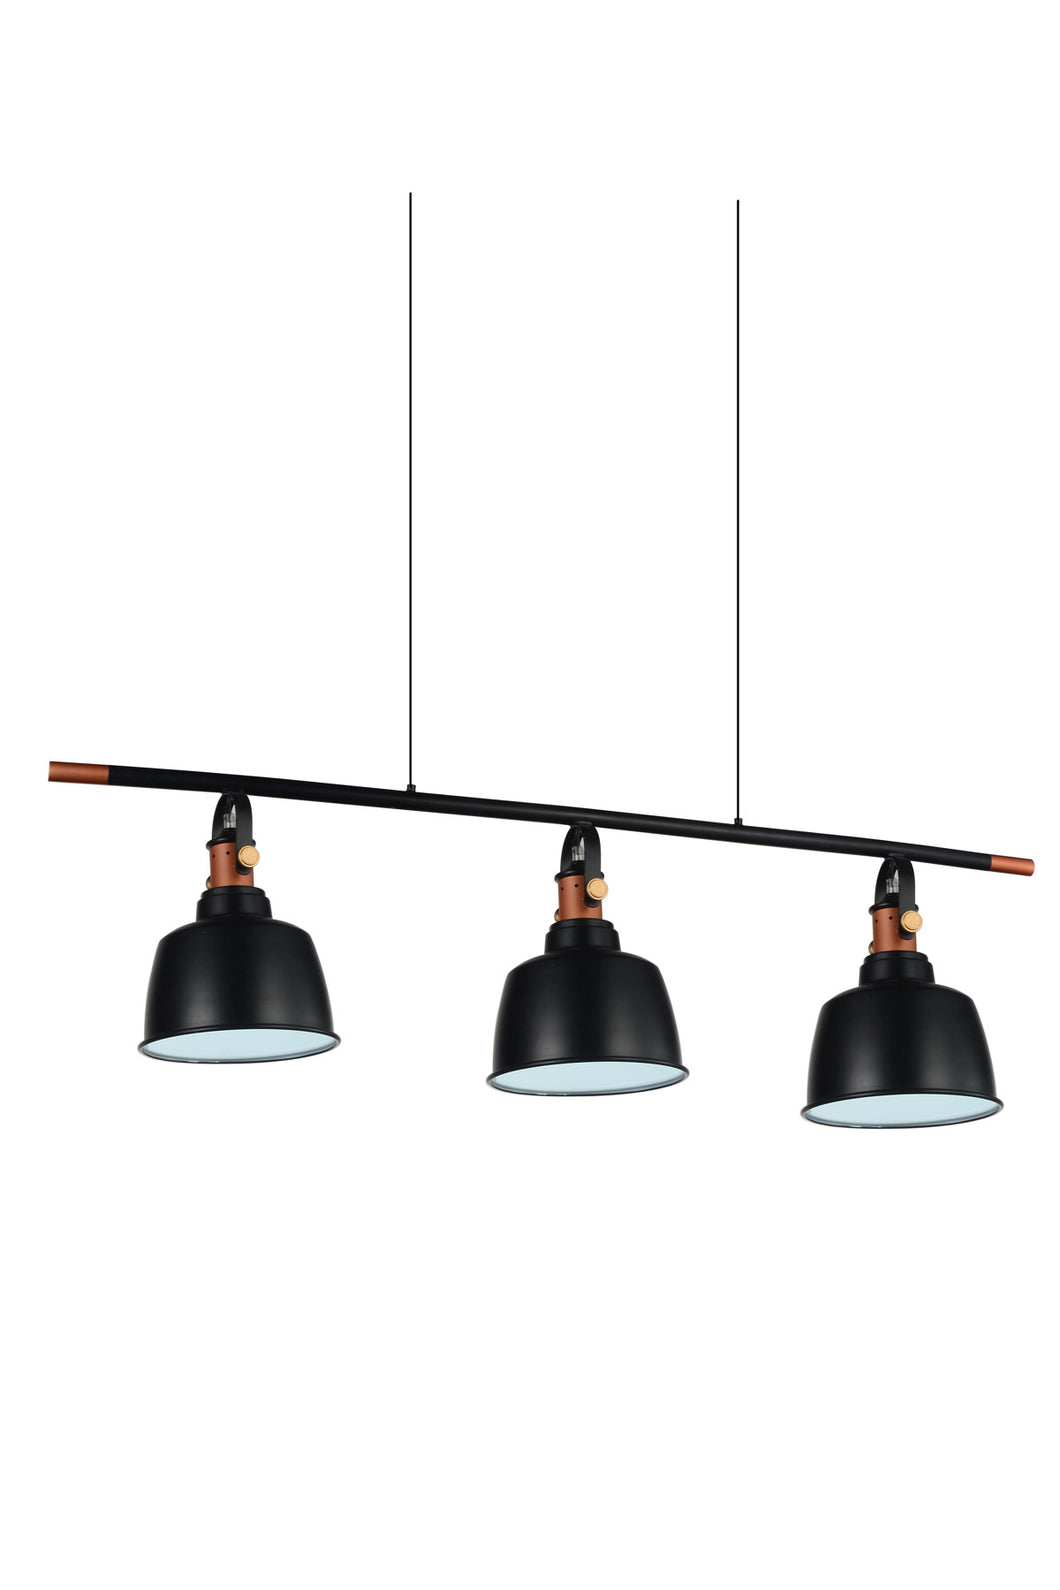 3 Light Pool Table Light with Black finish